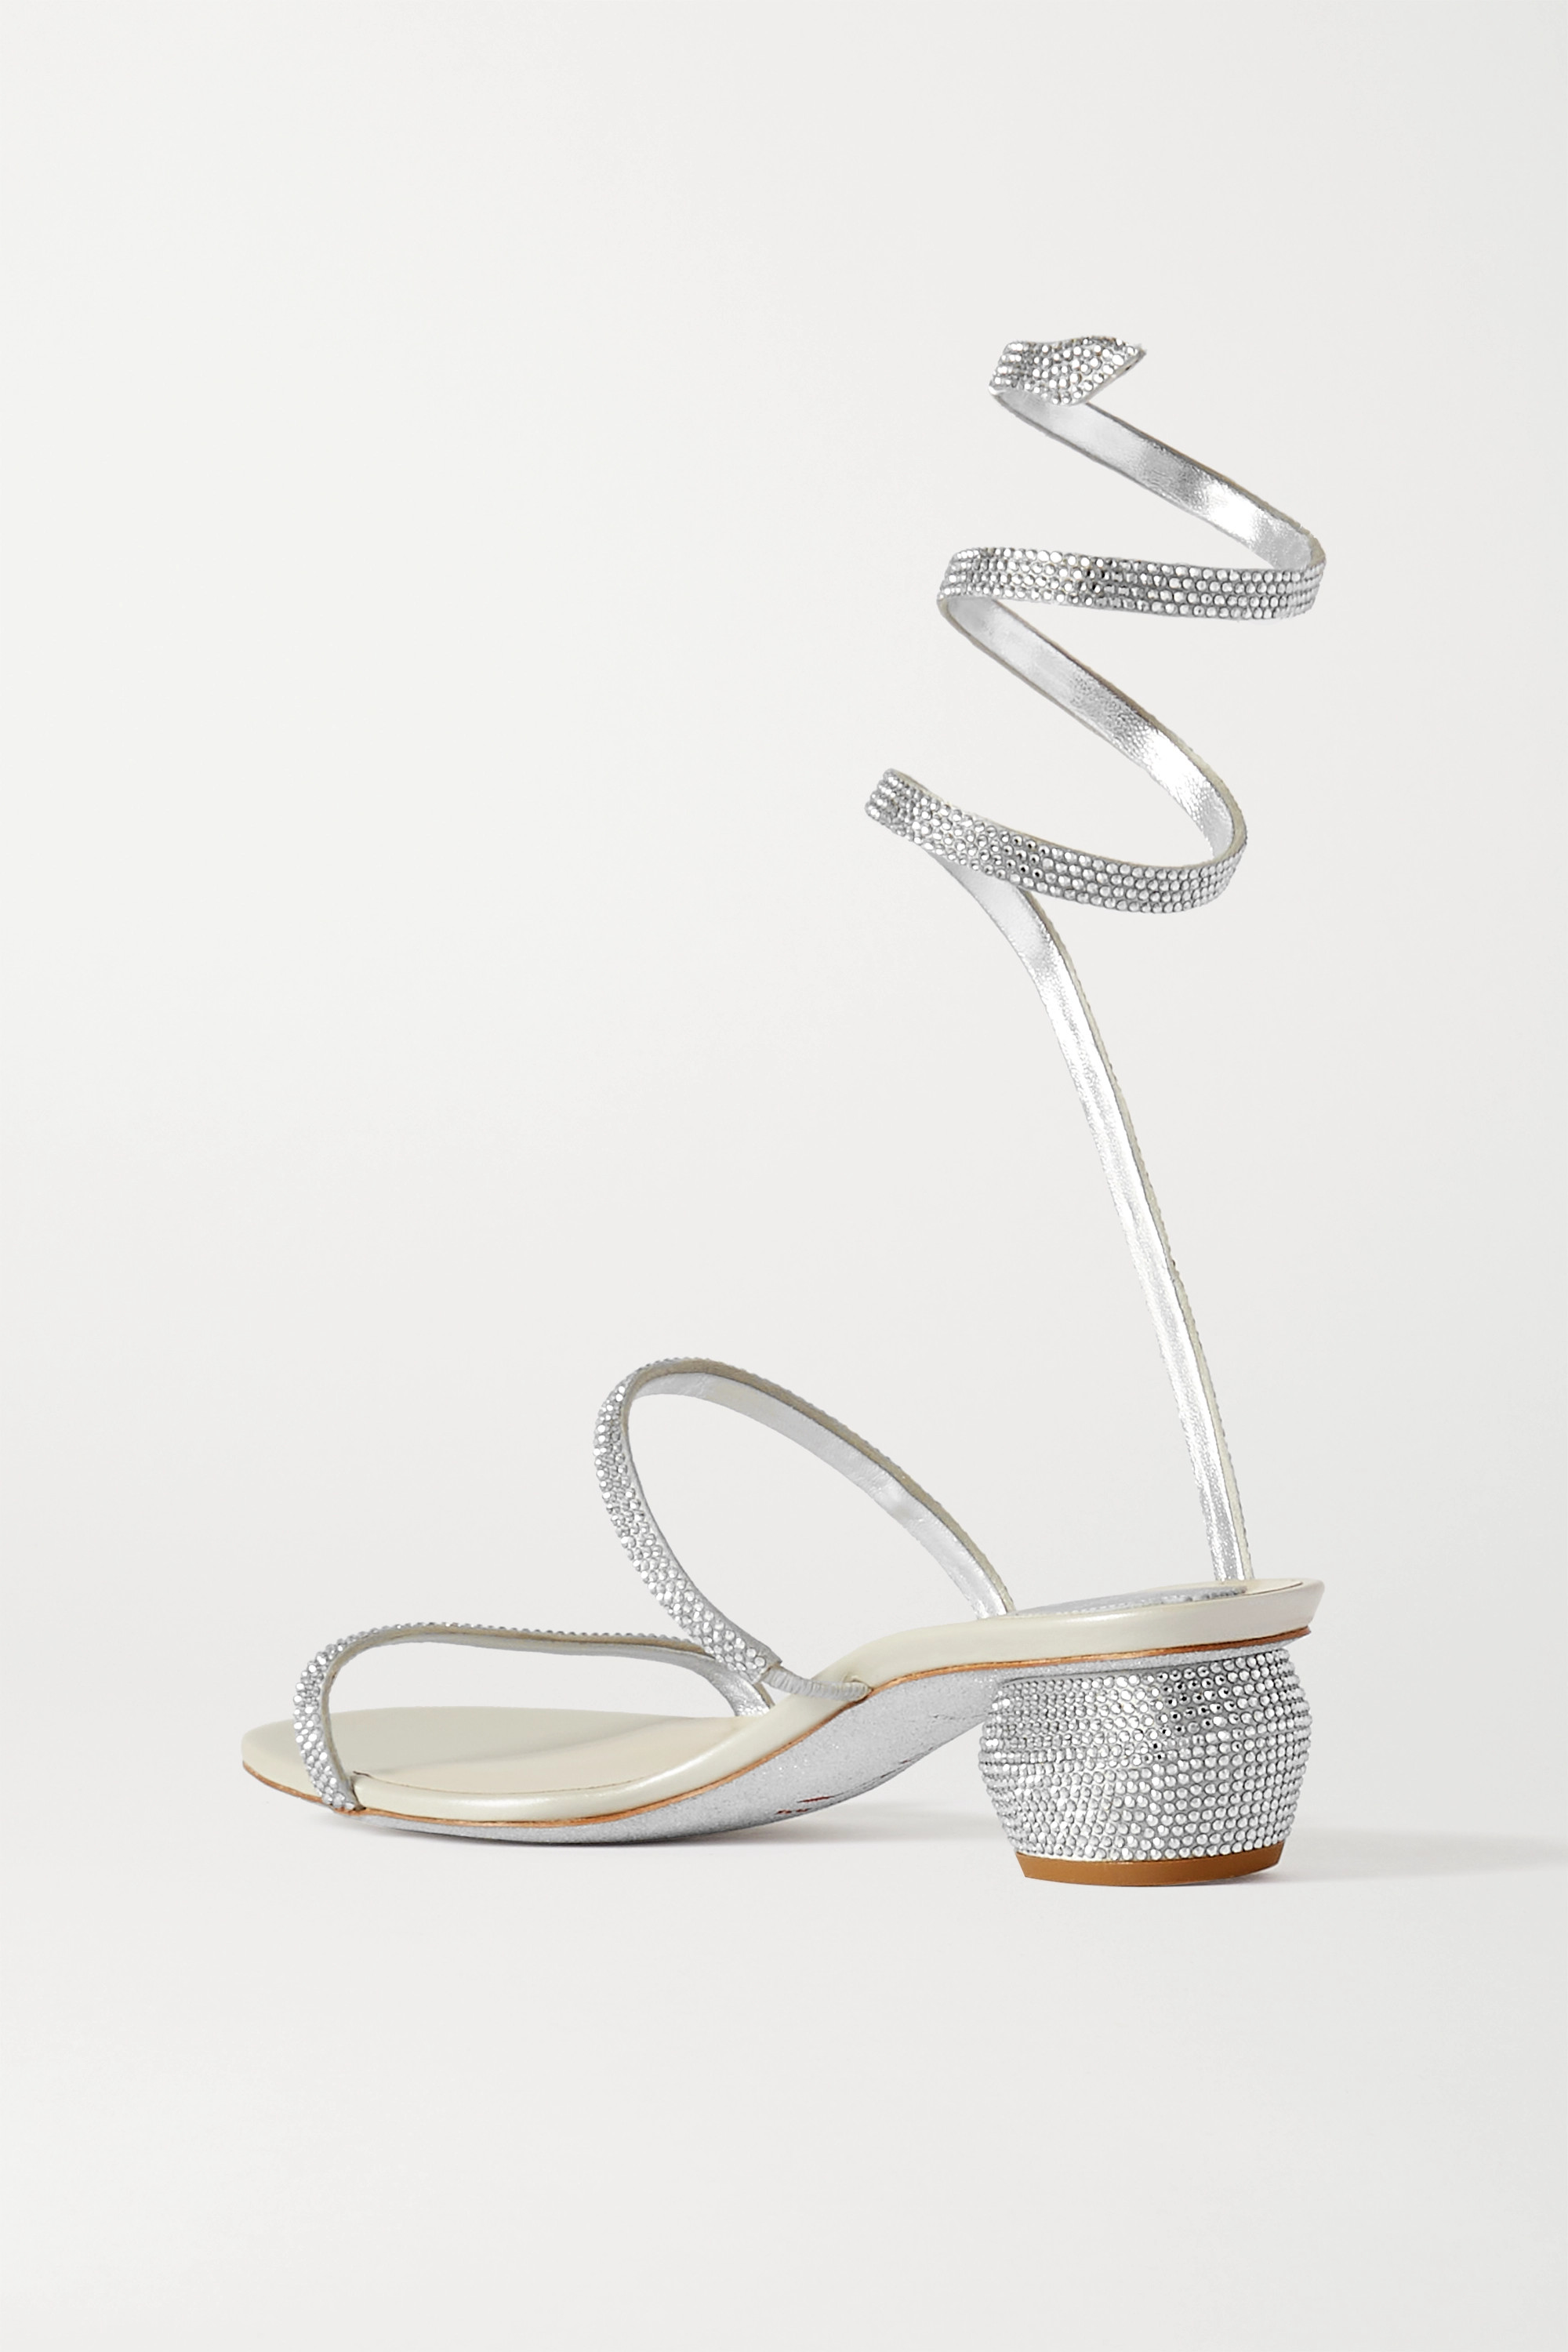 RENÉ CAOVILLA Cleo crystal-embellished metallic leather sandals